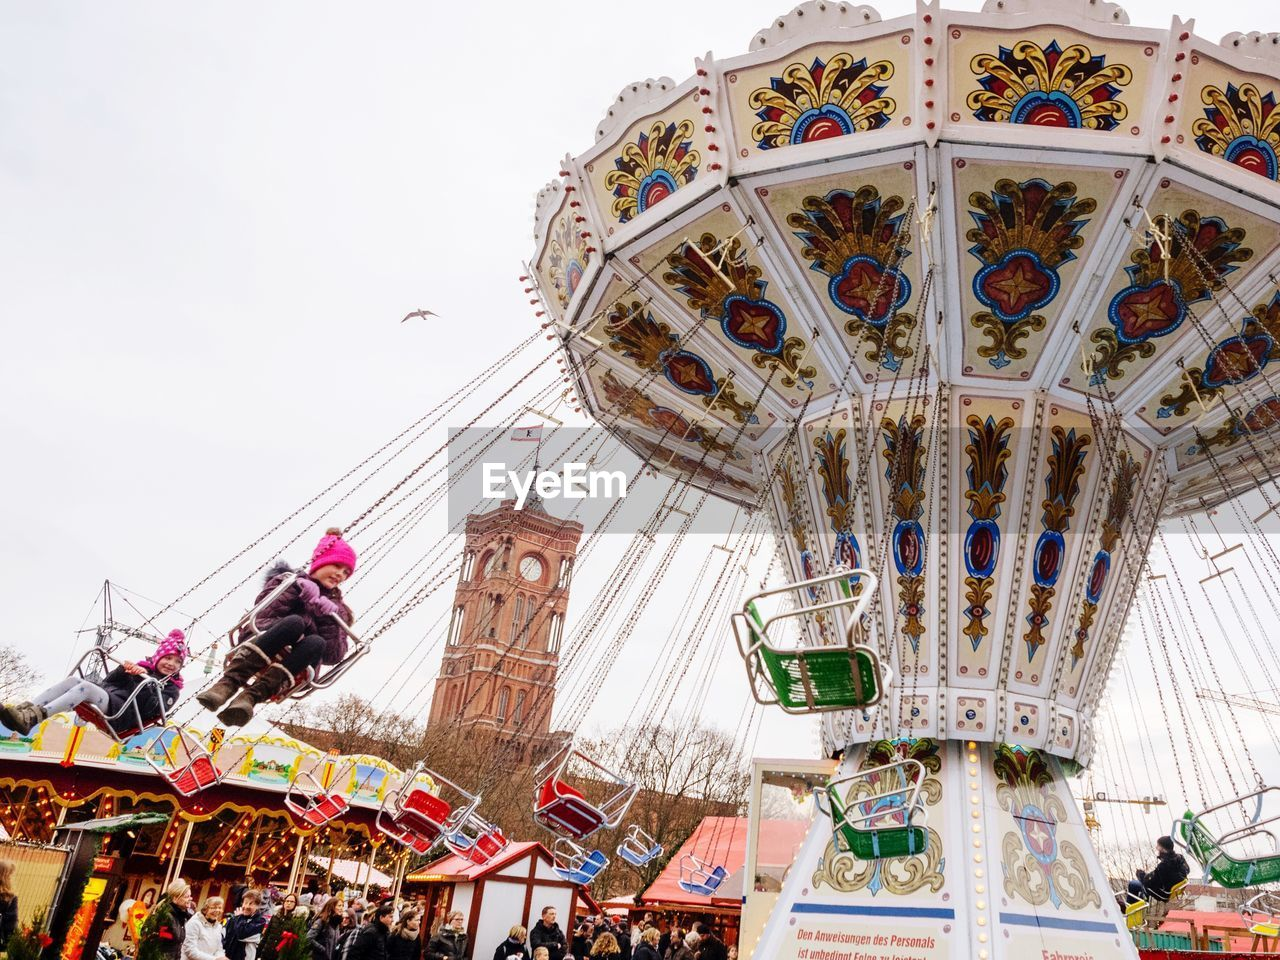 amusement park, arts culture and entertainment, amusement park ride, low angle view, leisure activity, carousel, enjoyment, built structure, day, merry-go-round, large group of people, outdoors, clear sky, real people, architecture, sky, people